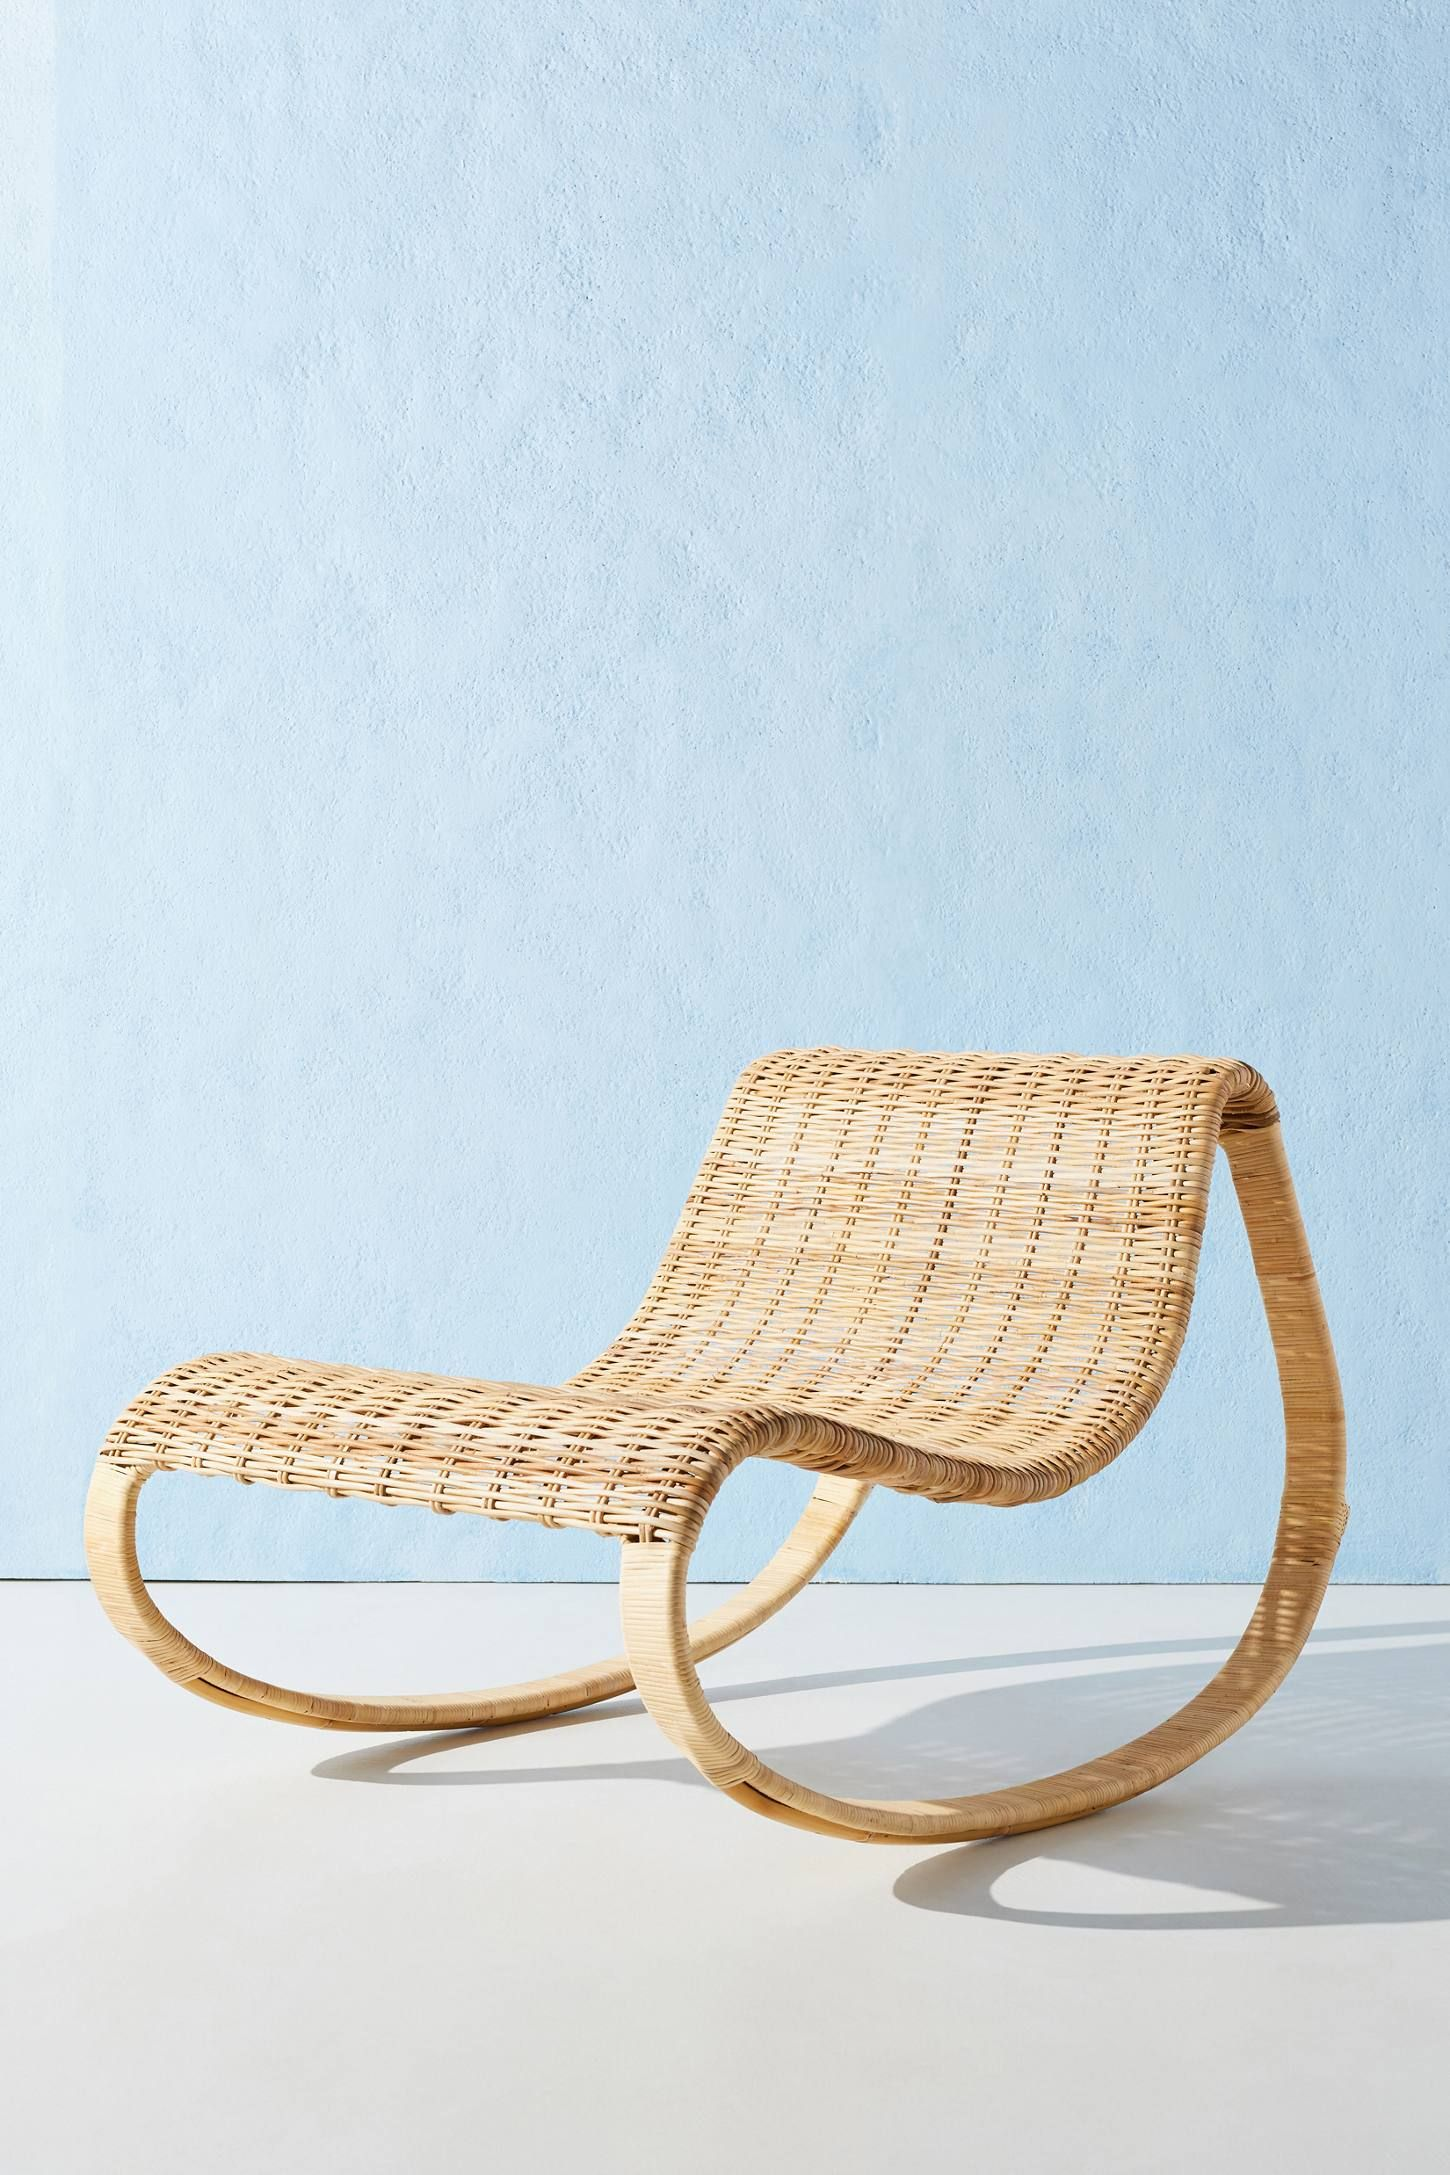 Marvelous Rattan Rocking Chair In 2019 Crane Island Rattan Rocking Onthecornerstone Fun Painted Chair Ideas Images Onthecornerstoneorg